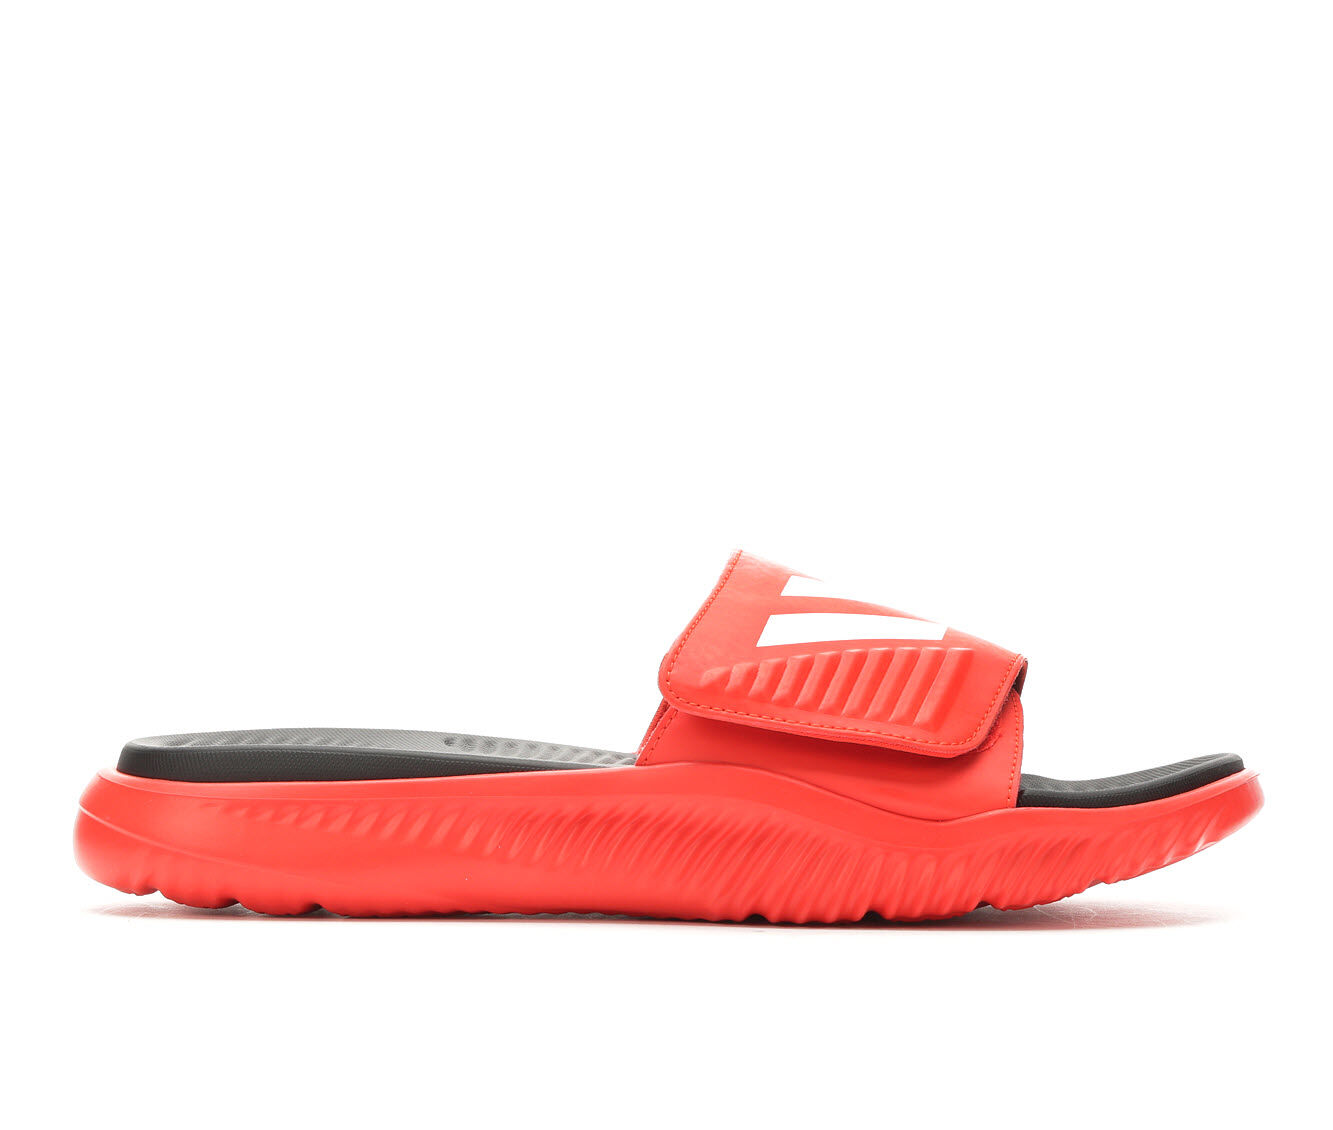 Men's Adidas AlphaBounce Slide Sport Slides Red/White/Black